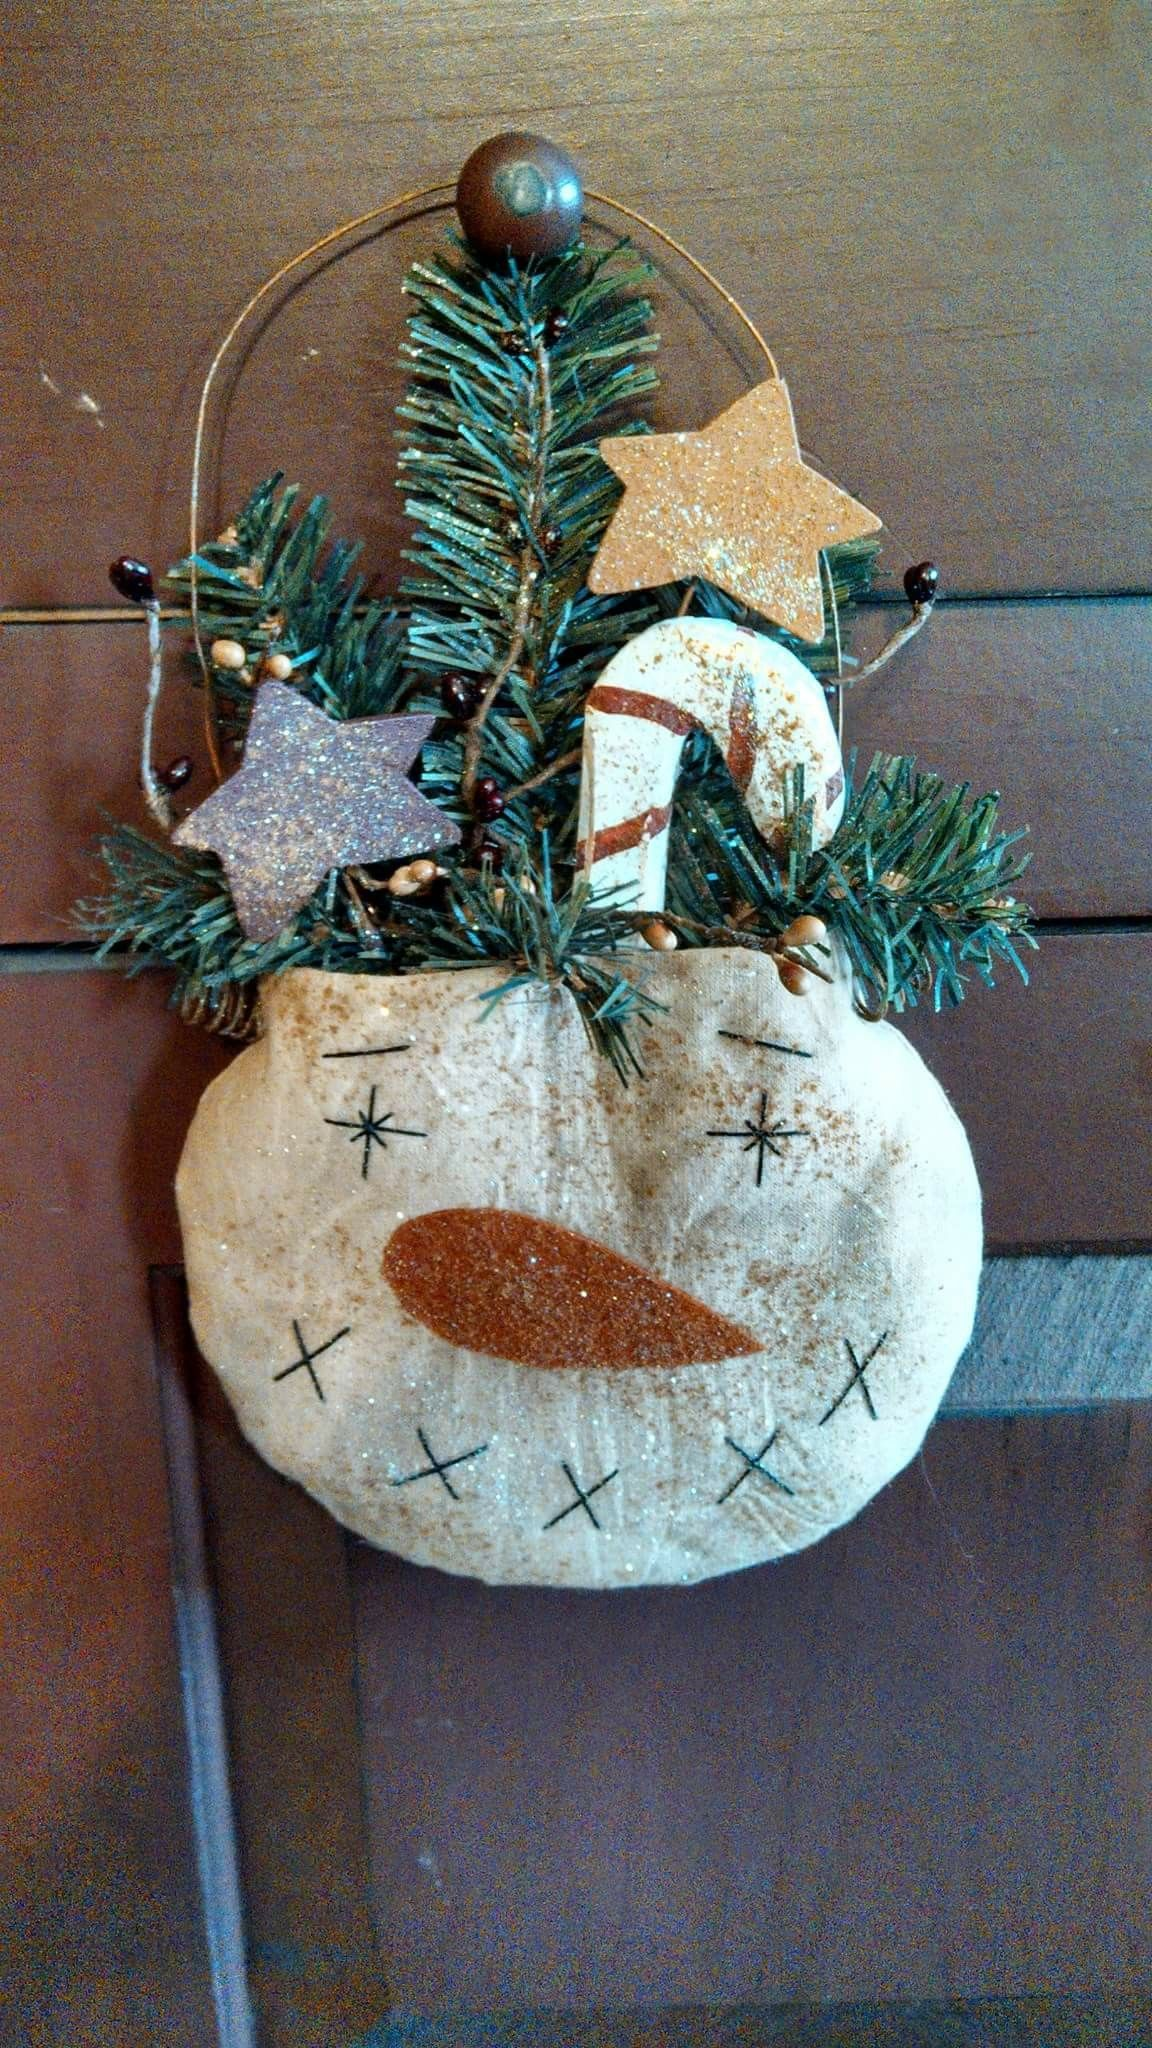 Pin by Pam Reynolds on Christmas Pinterest